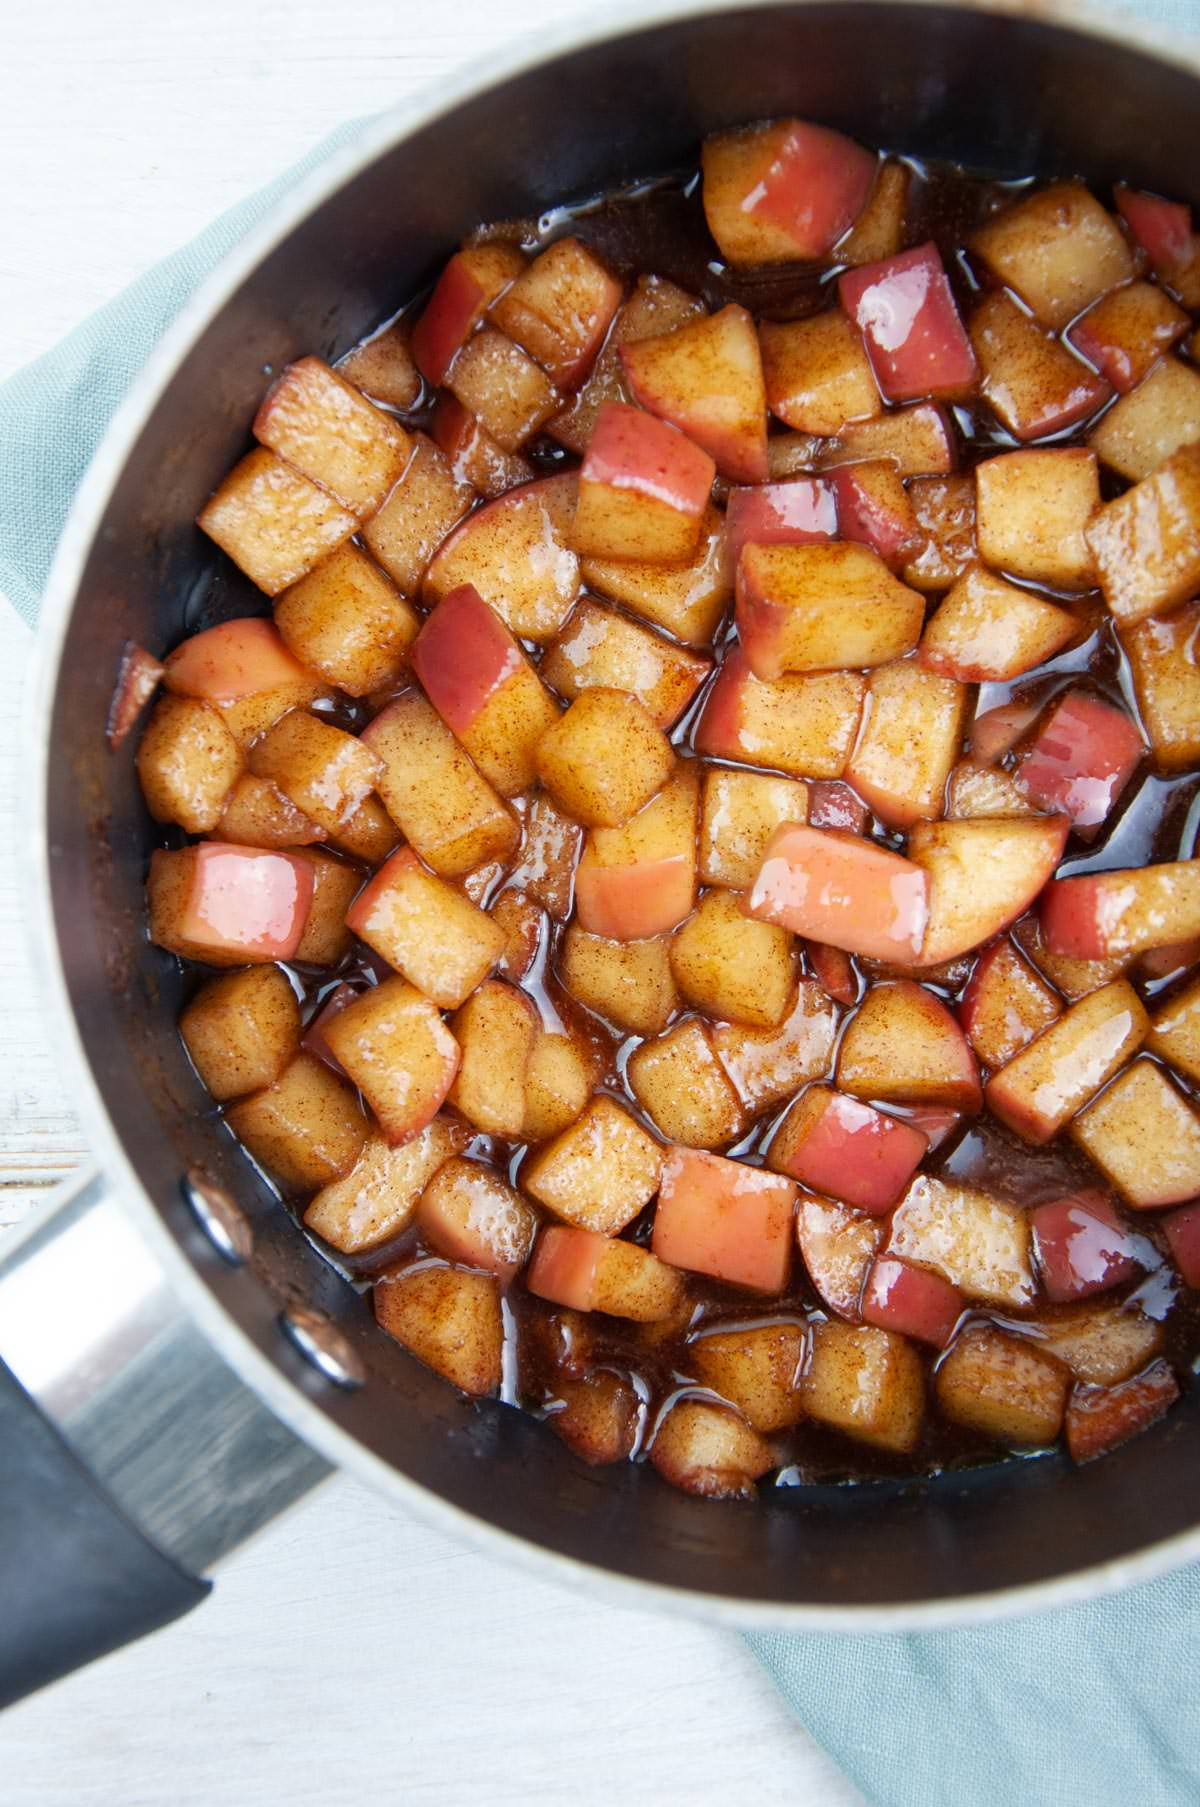 stewed apples in pot